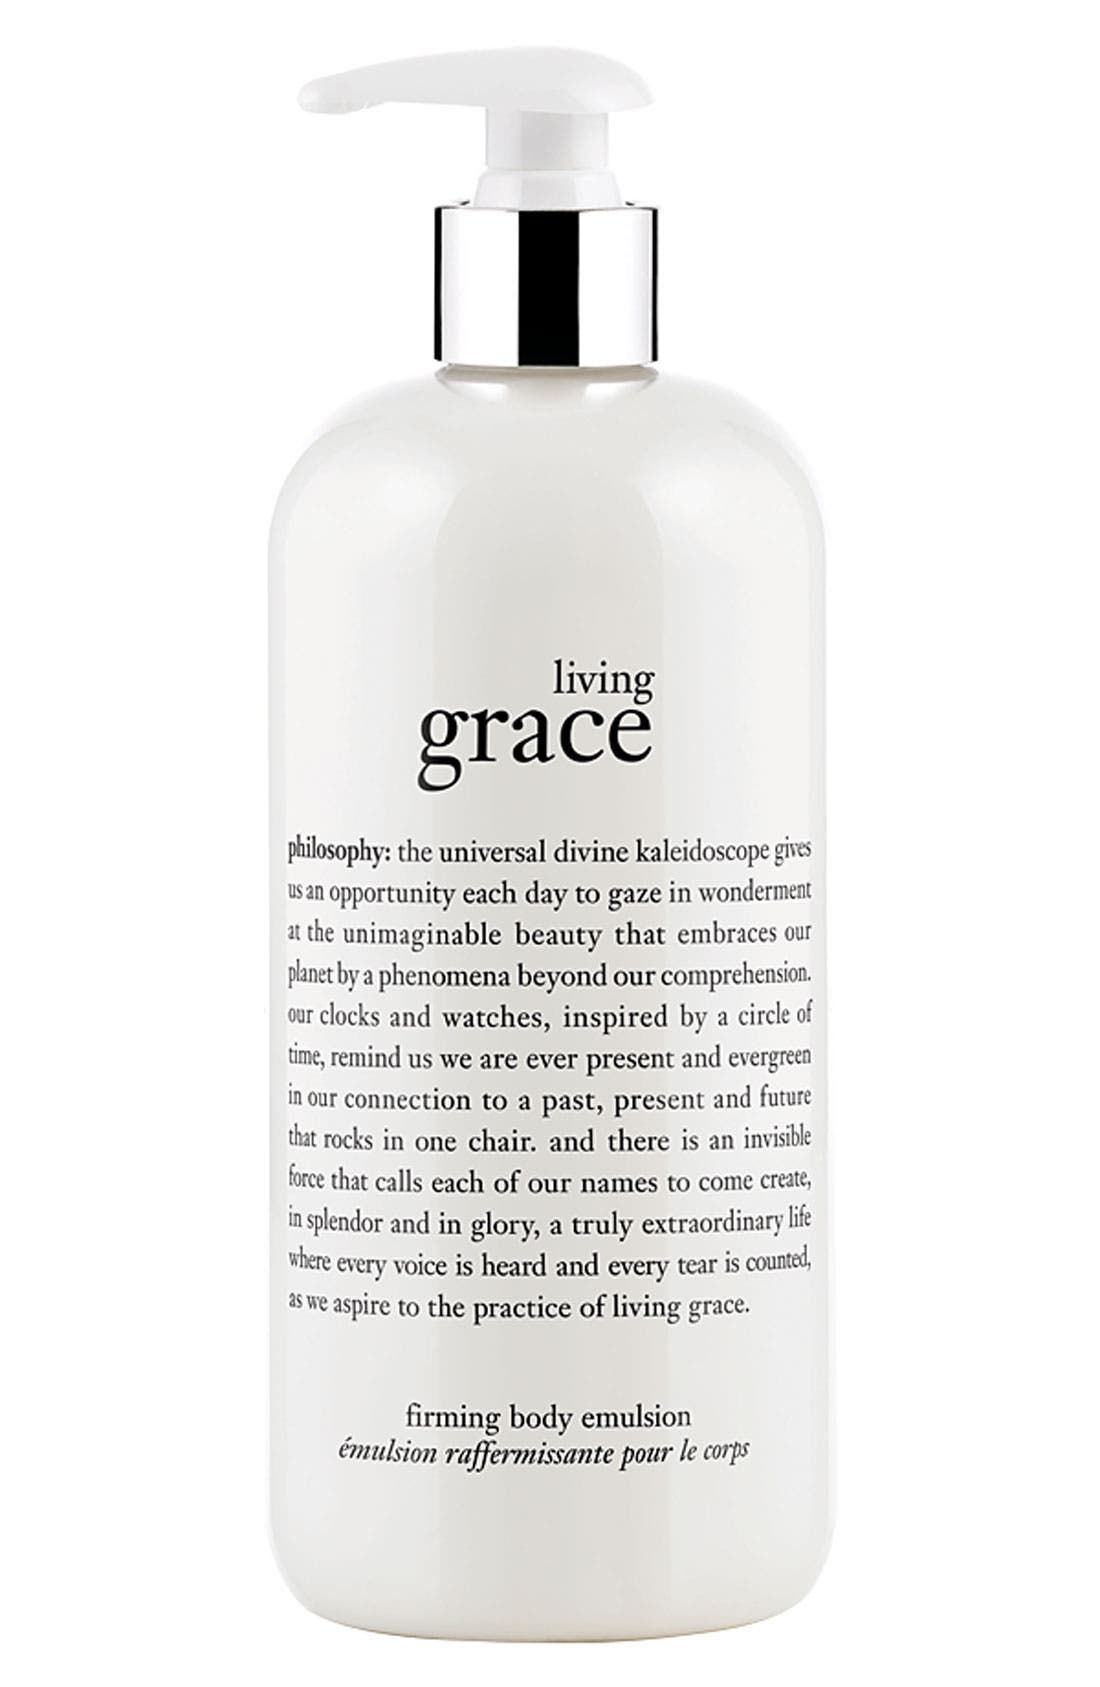 philosophy 'living grace' firming body emulsion